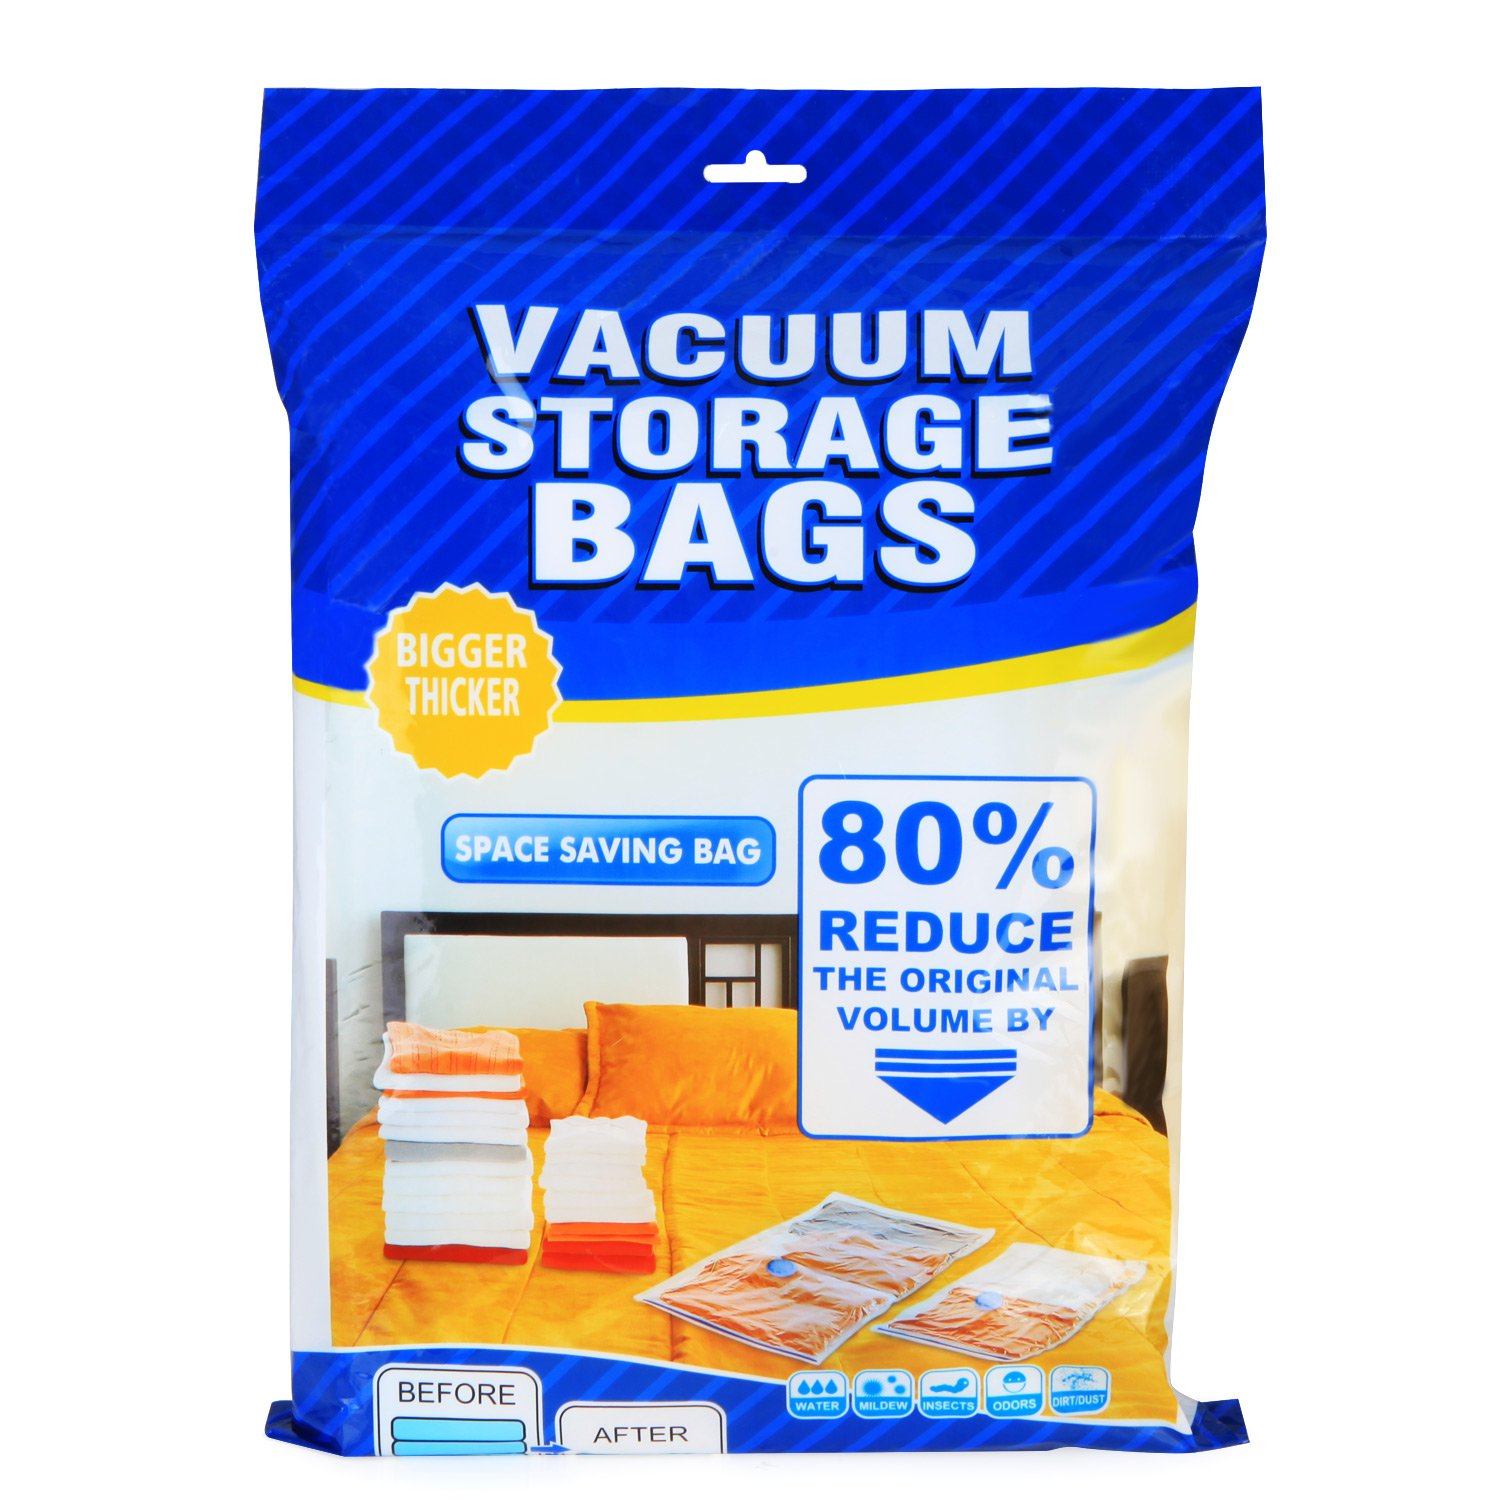 Makife Space Save Bags Vacuum Storage Bags Cloth Towel Pillow Blanket Travel 1 Free Hand Pump Save 80% Space Compression Works with Any Vacuum Cleaner 5 Pack, 24 32 inches